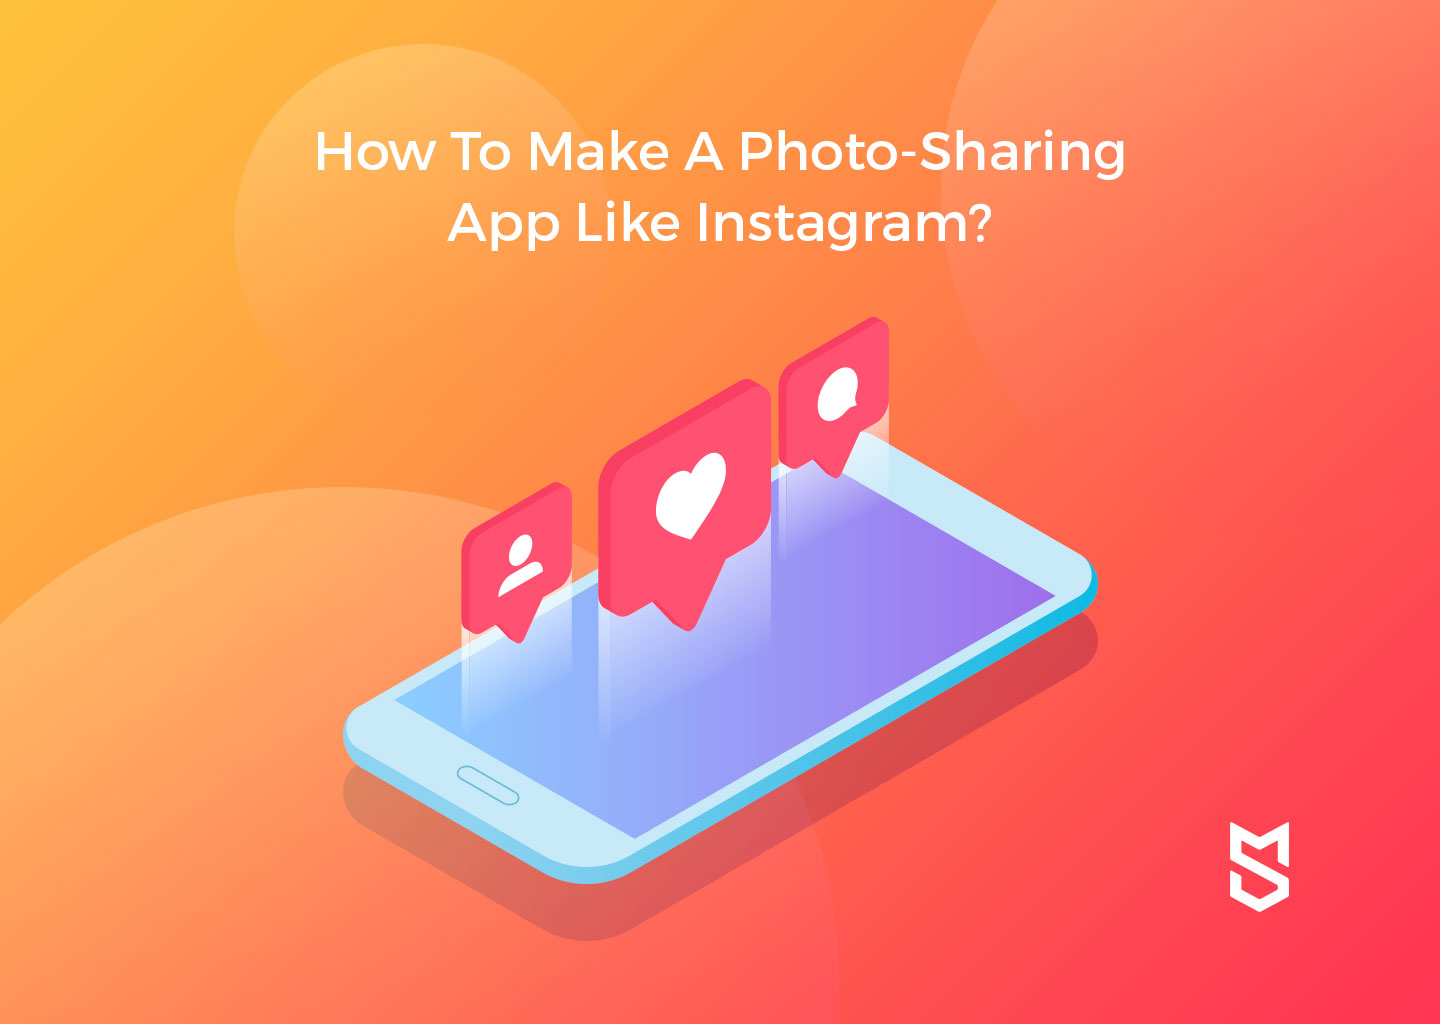 How To Make A Photo-Sharing App Like Instagram?